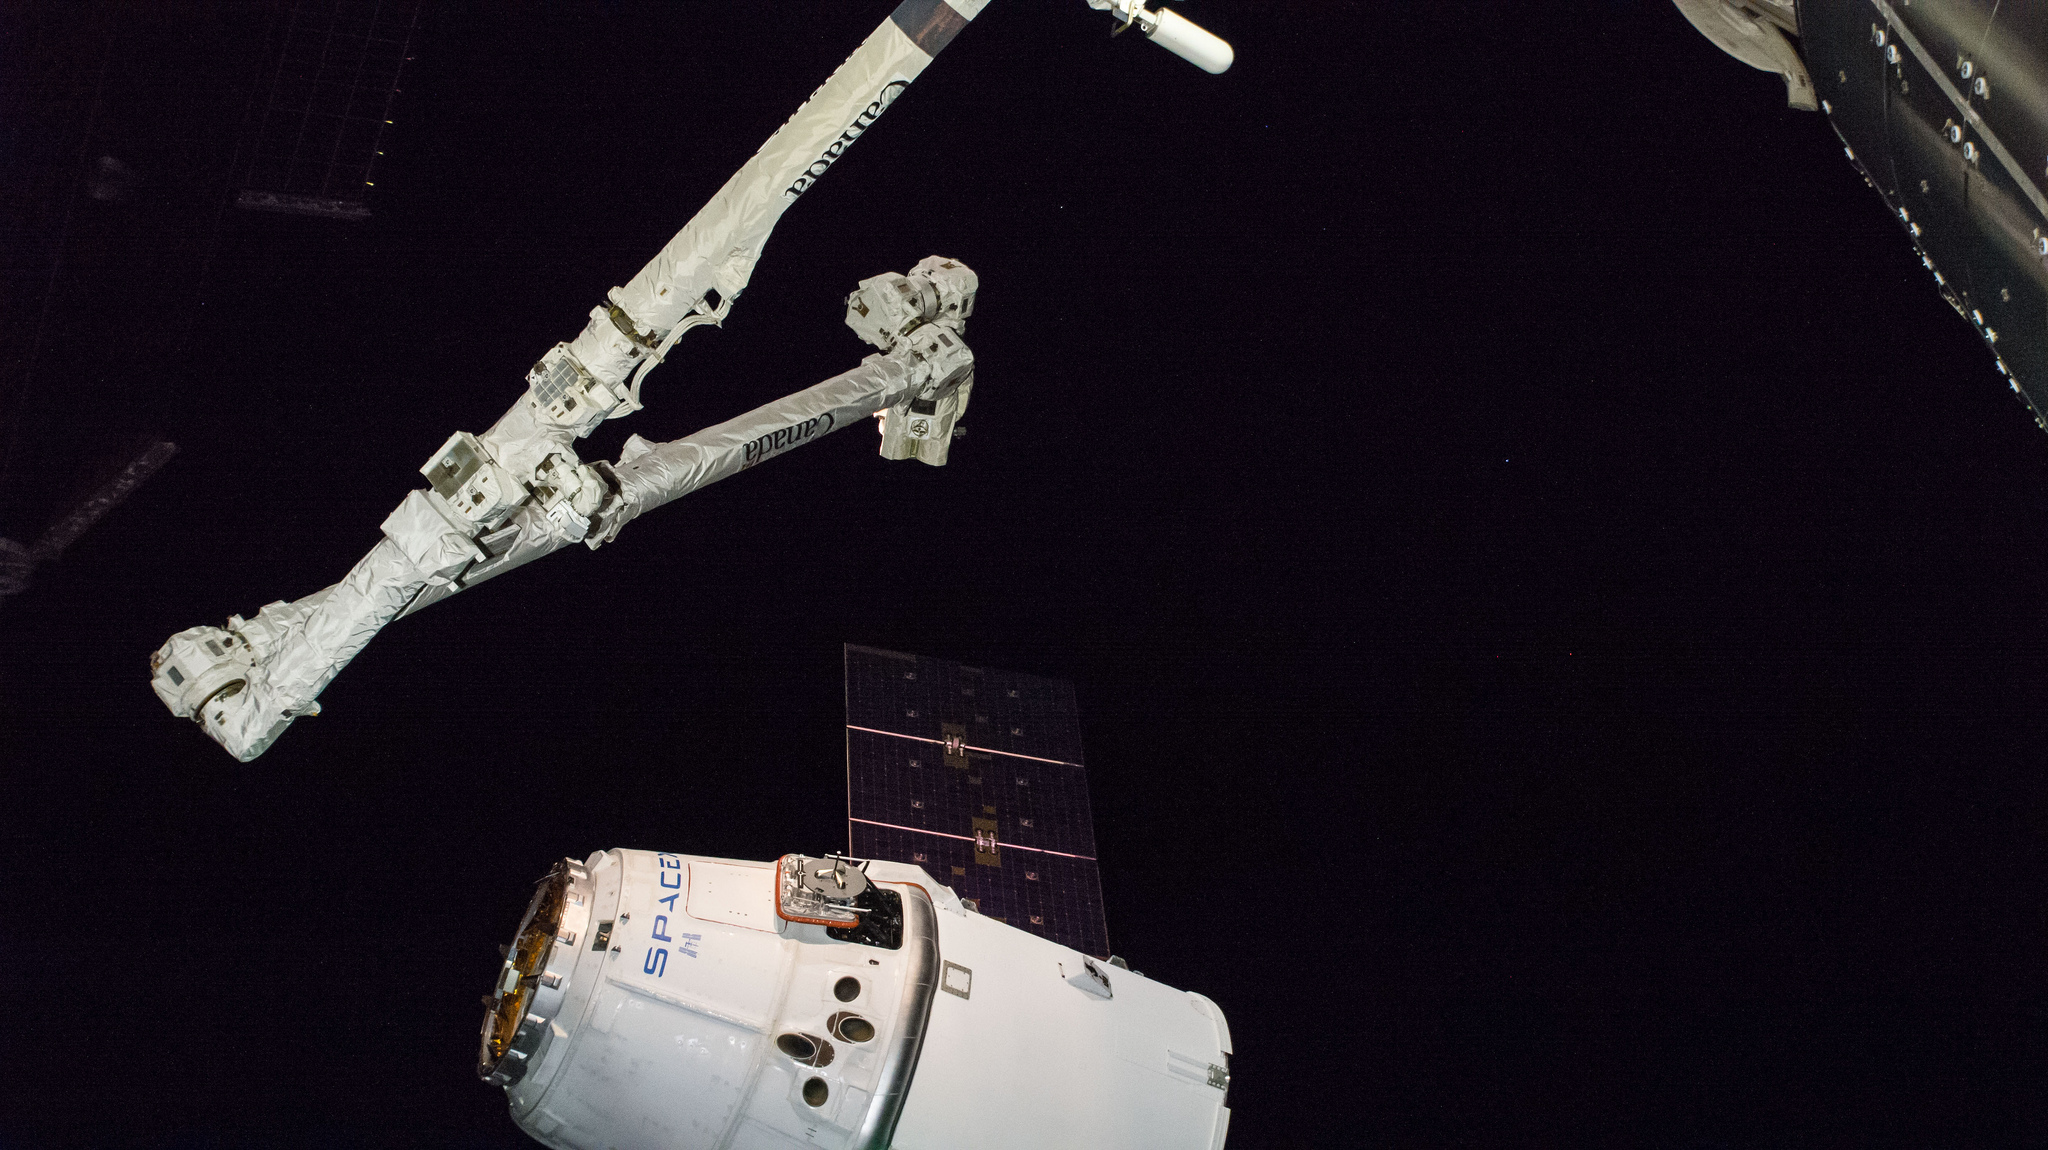 The CRS-16 Dragon moments before being captured by the space station's robotic arm. Credit: NASA